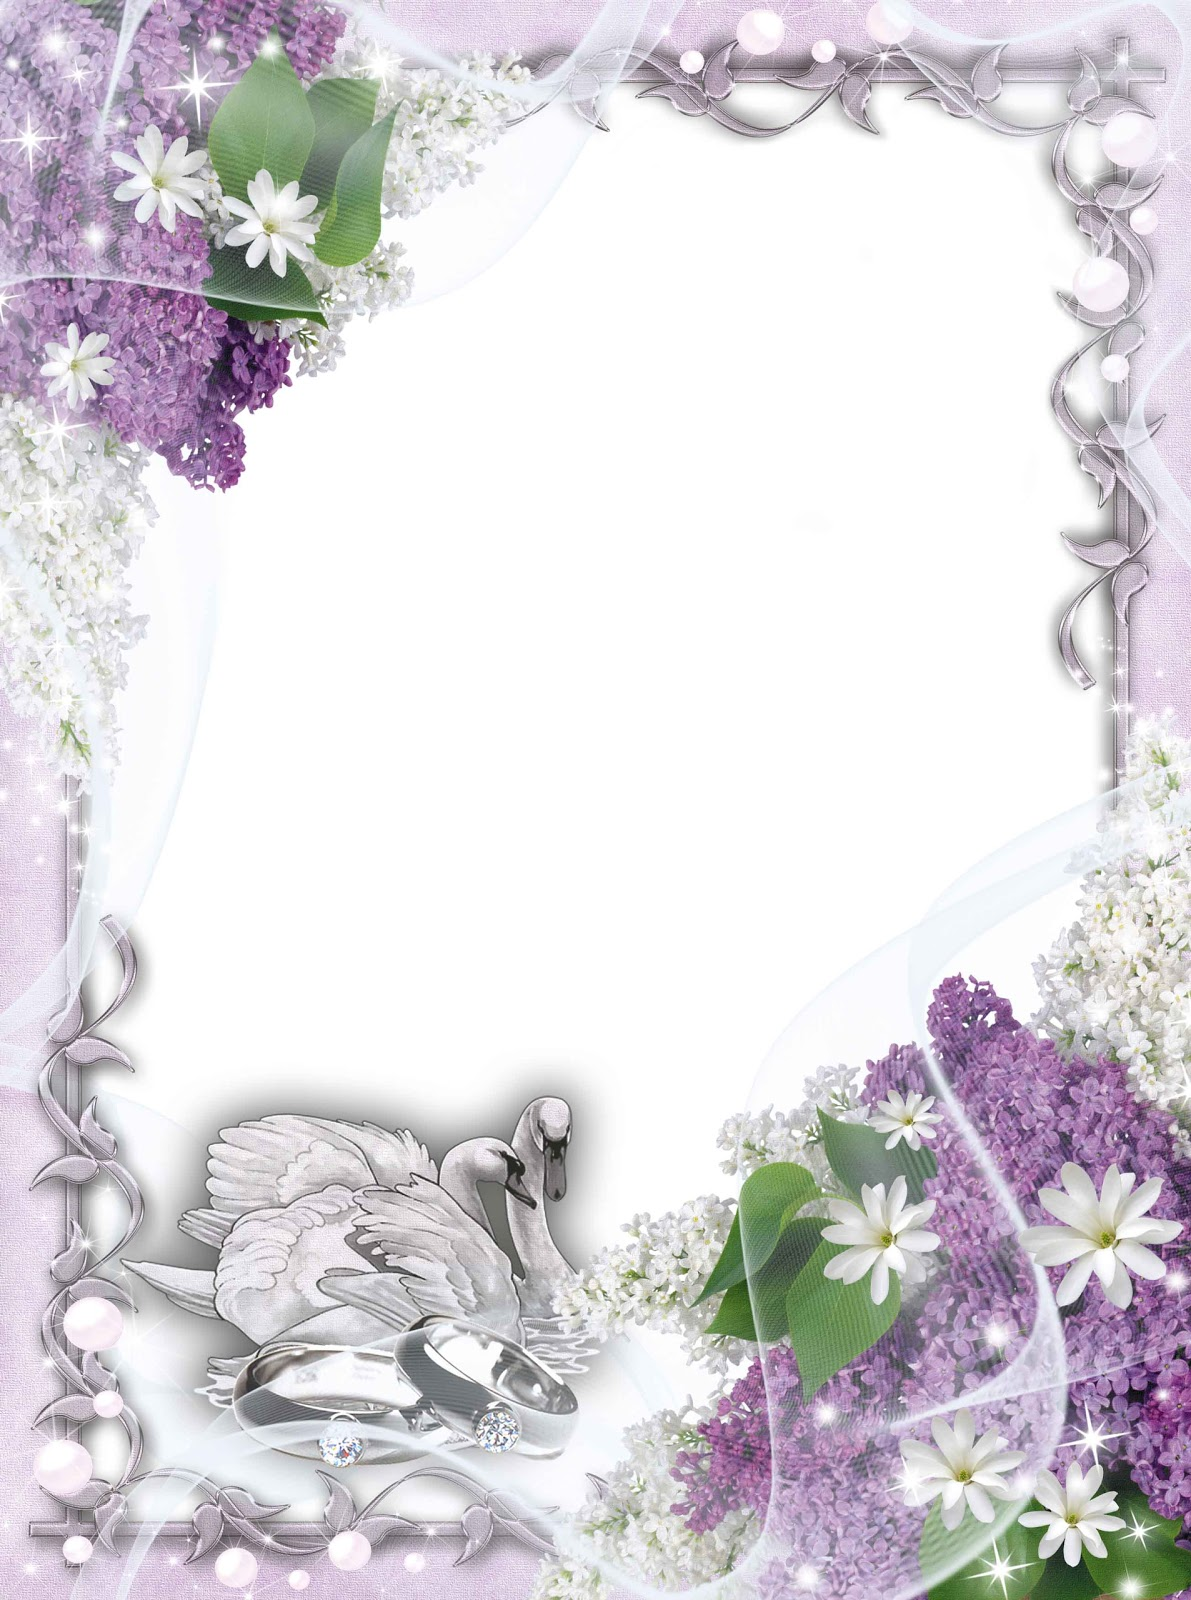 Download Png Wedding Frame Images Free #35178 - Free Icons and PNG ...